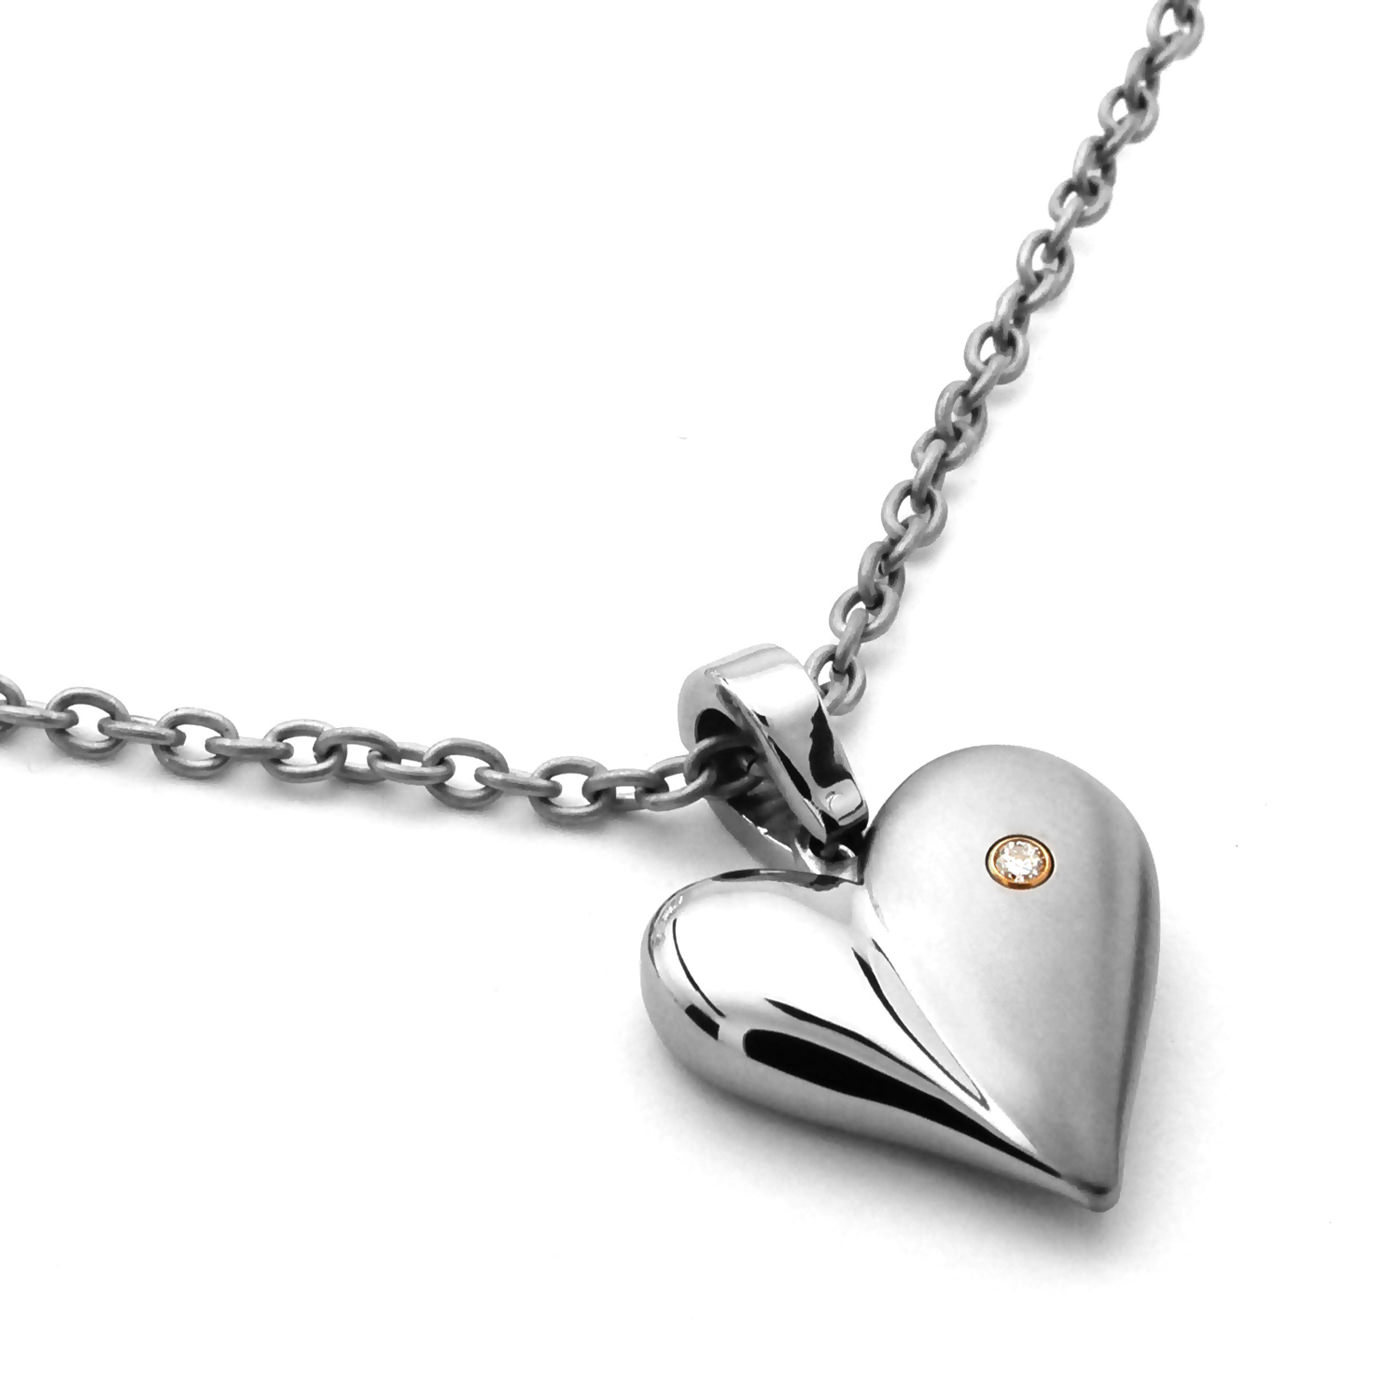 jewelers necklace product double h d posts heart gold jewelry jewellery recent